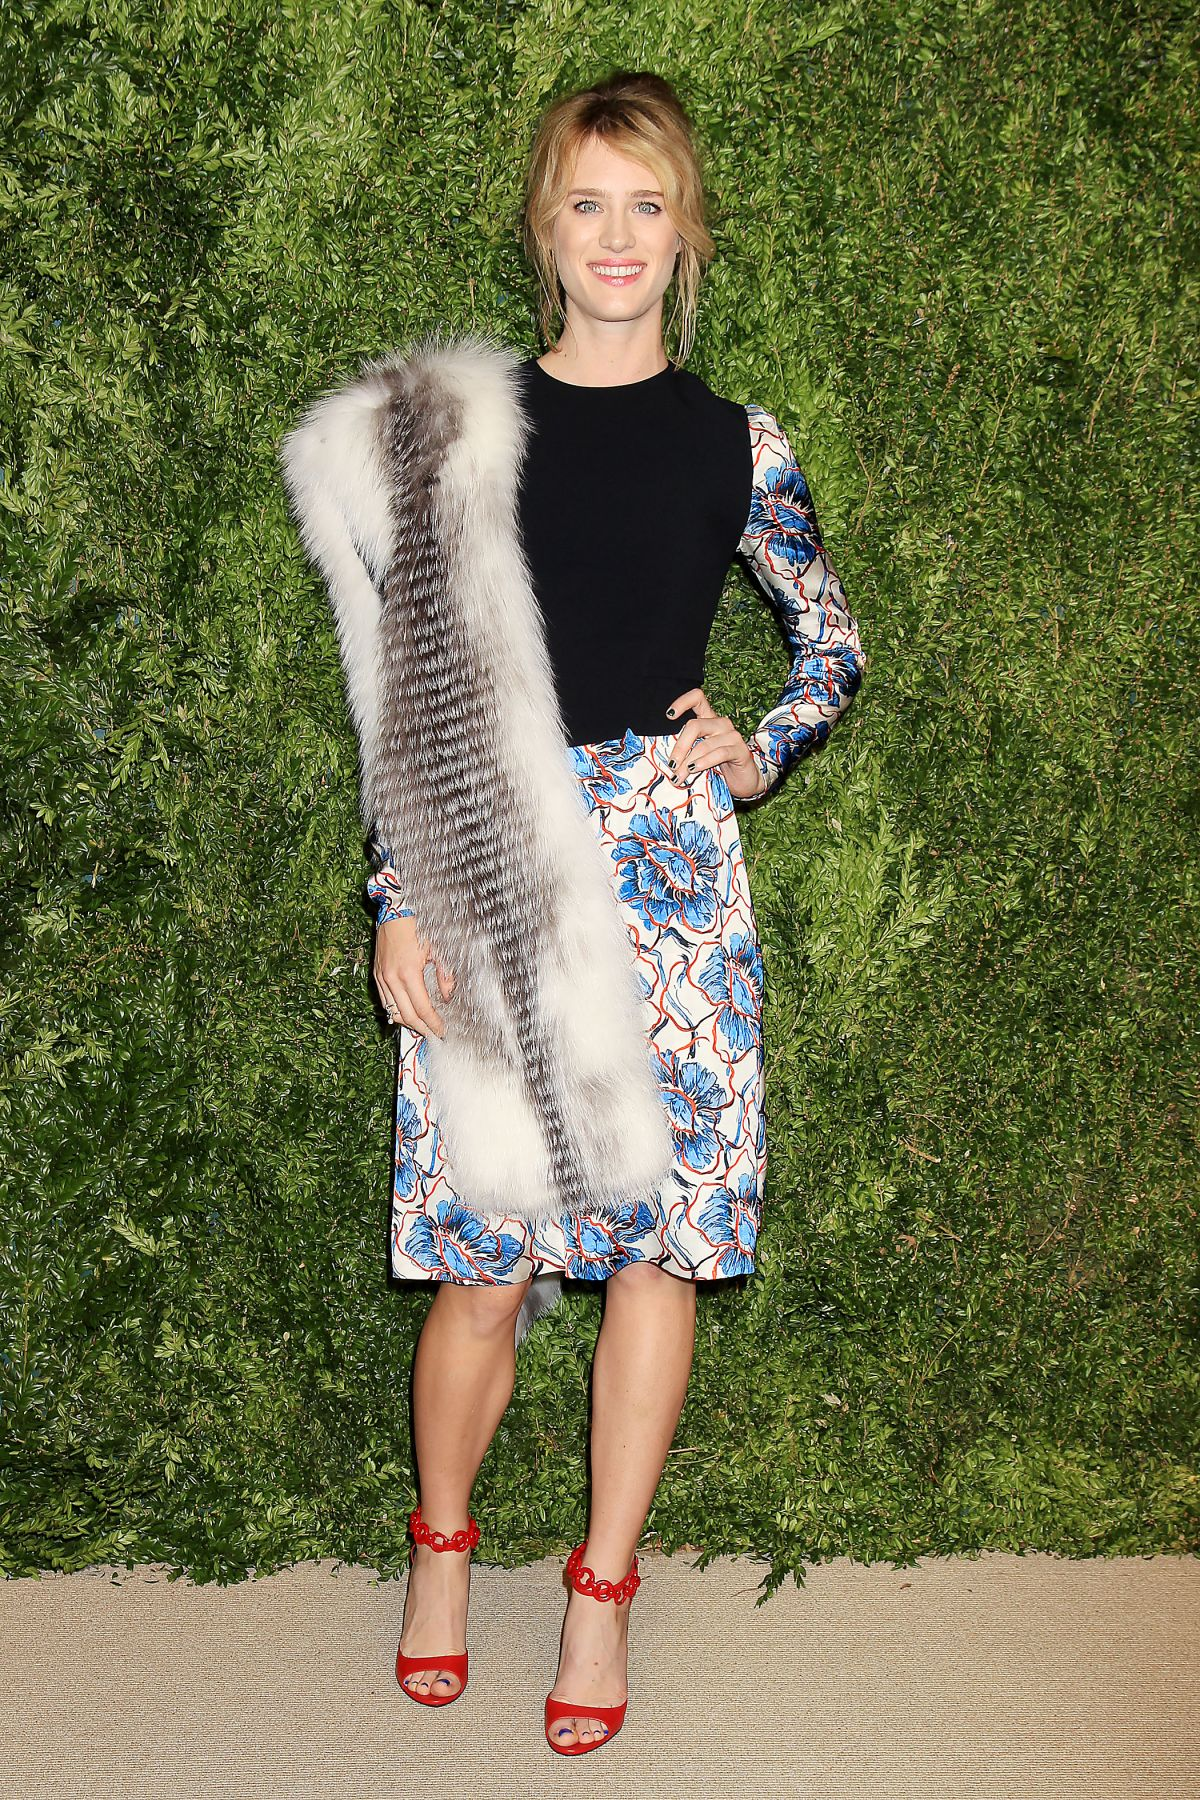 MACKENZIE DAVIS at 12th Annual CFDA/Vogue Fashion Fund Awards in New York 11/02/2015